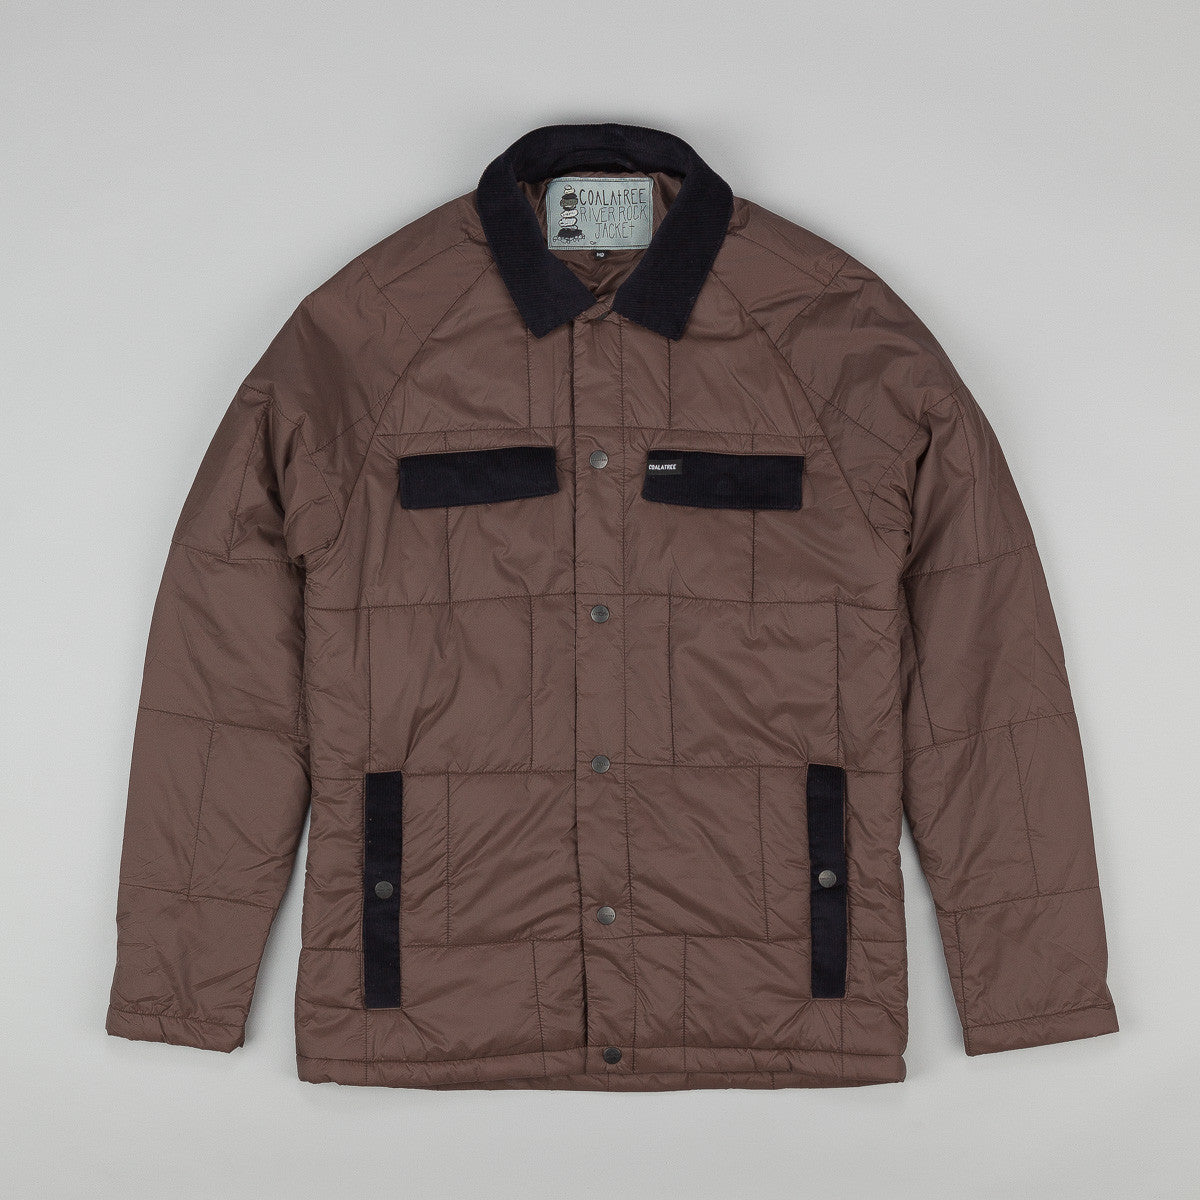 Coalatree River Rock Jacket - Mulch